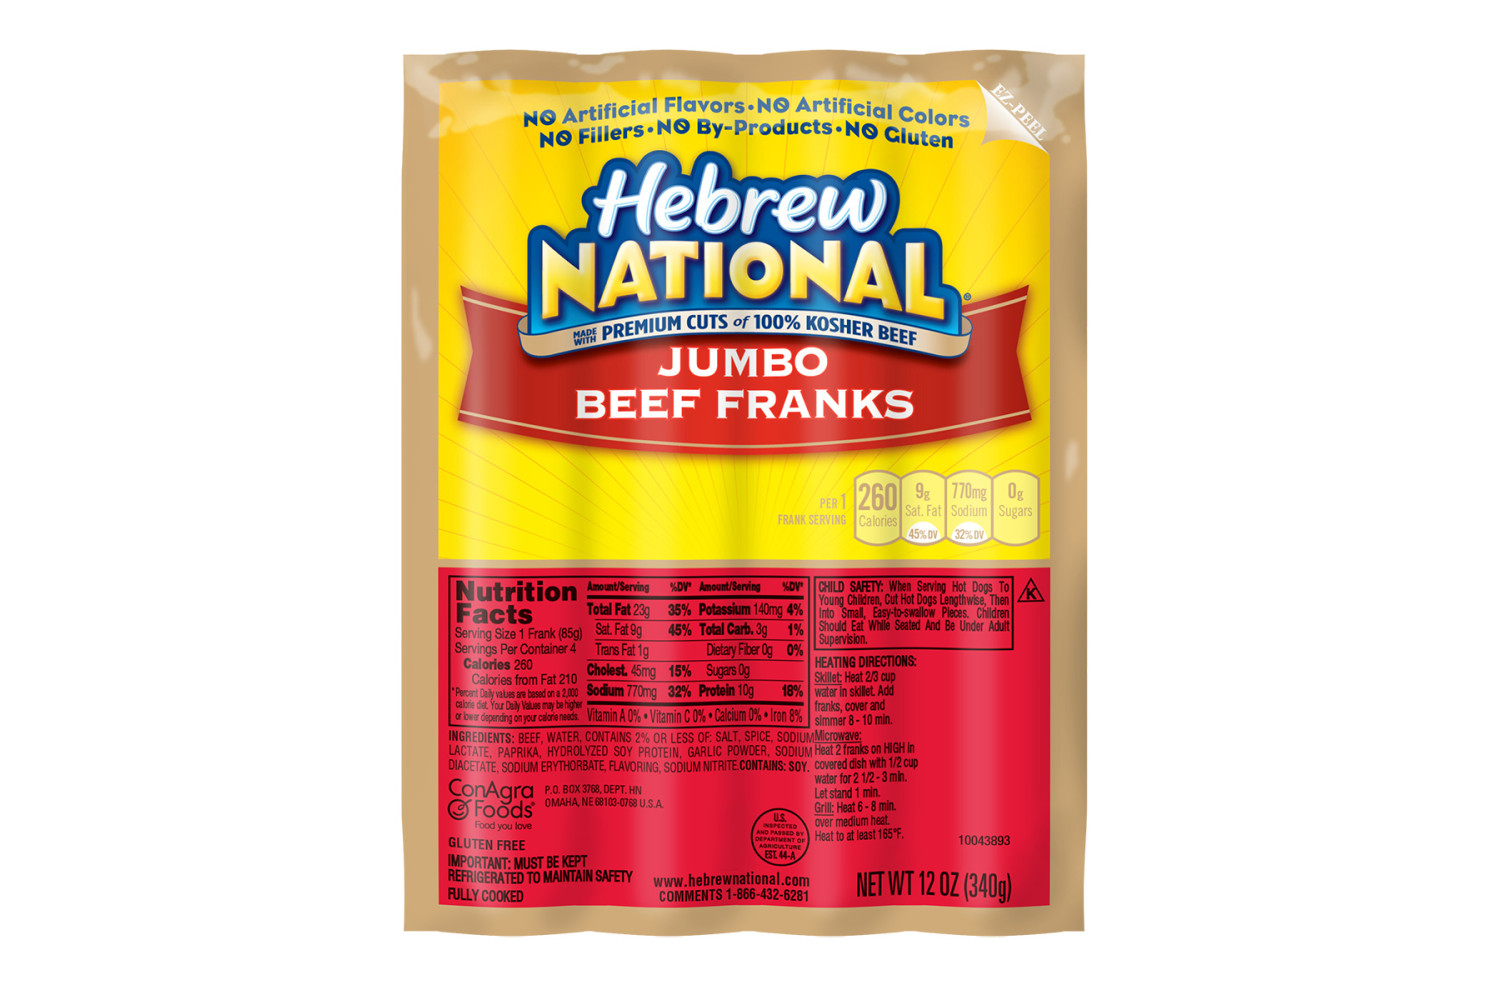 HEBREW NATIONAL Jumbo Beef Franks